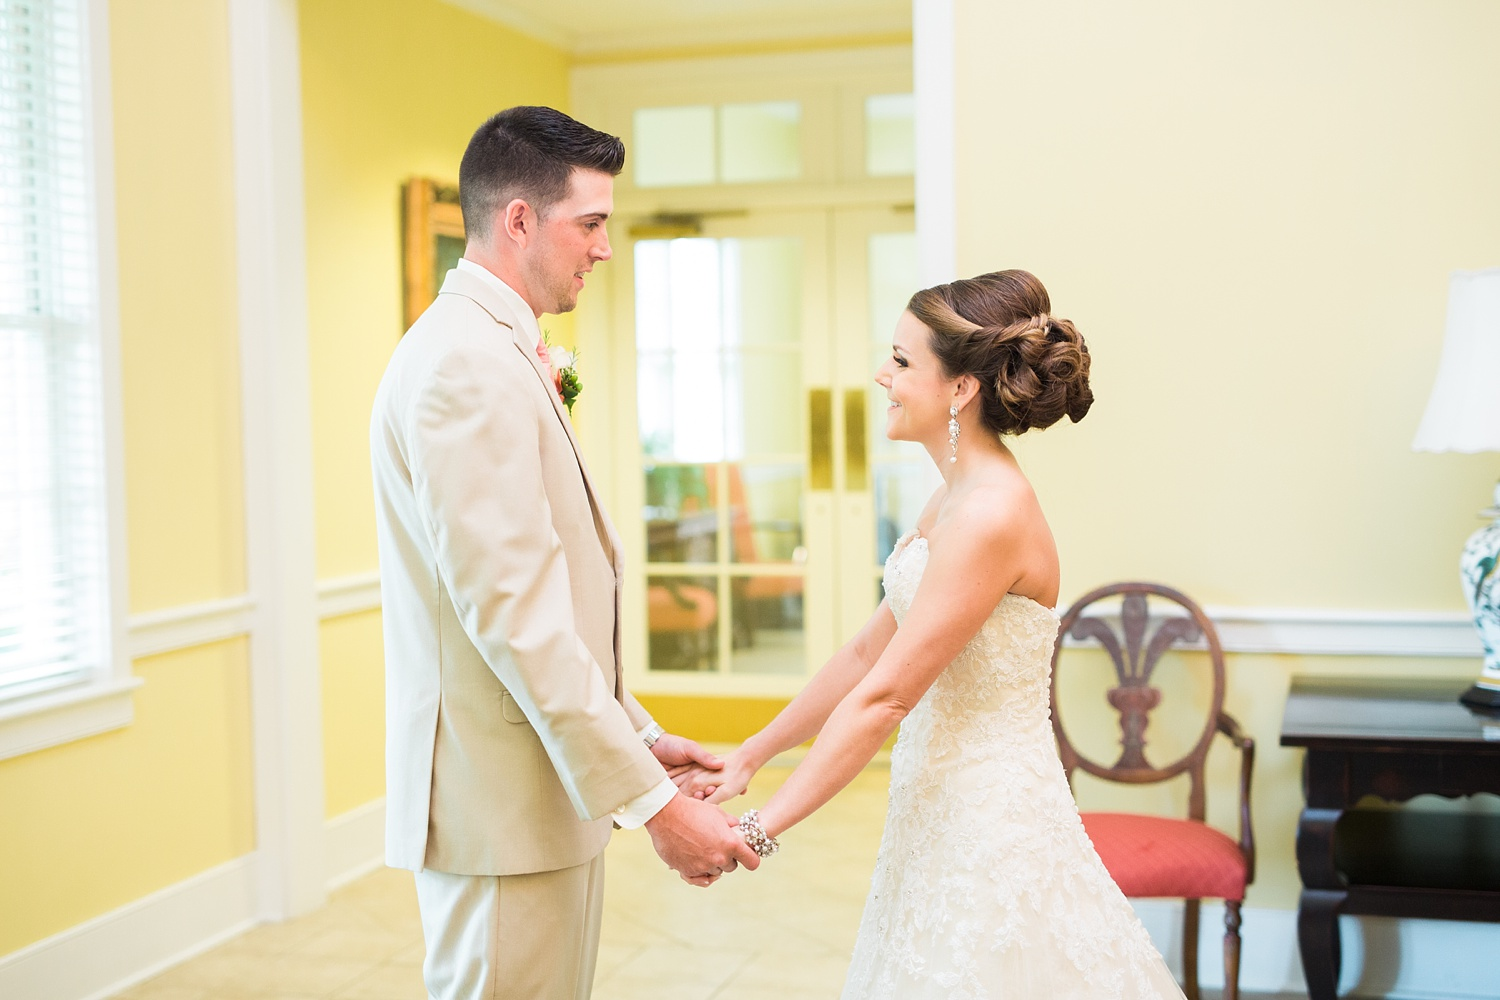 bride and groom see each other at their first look before their wedding ceremony